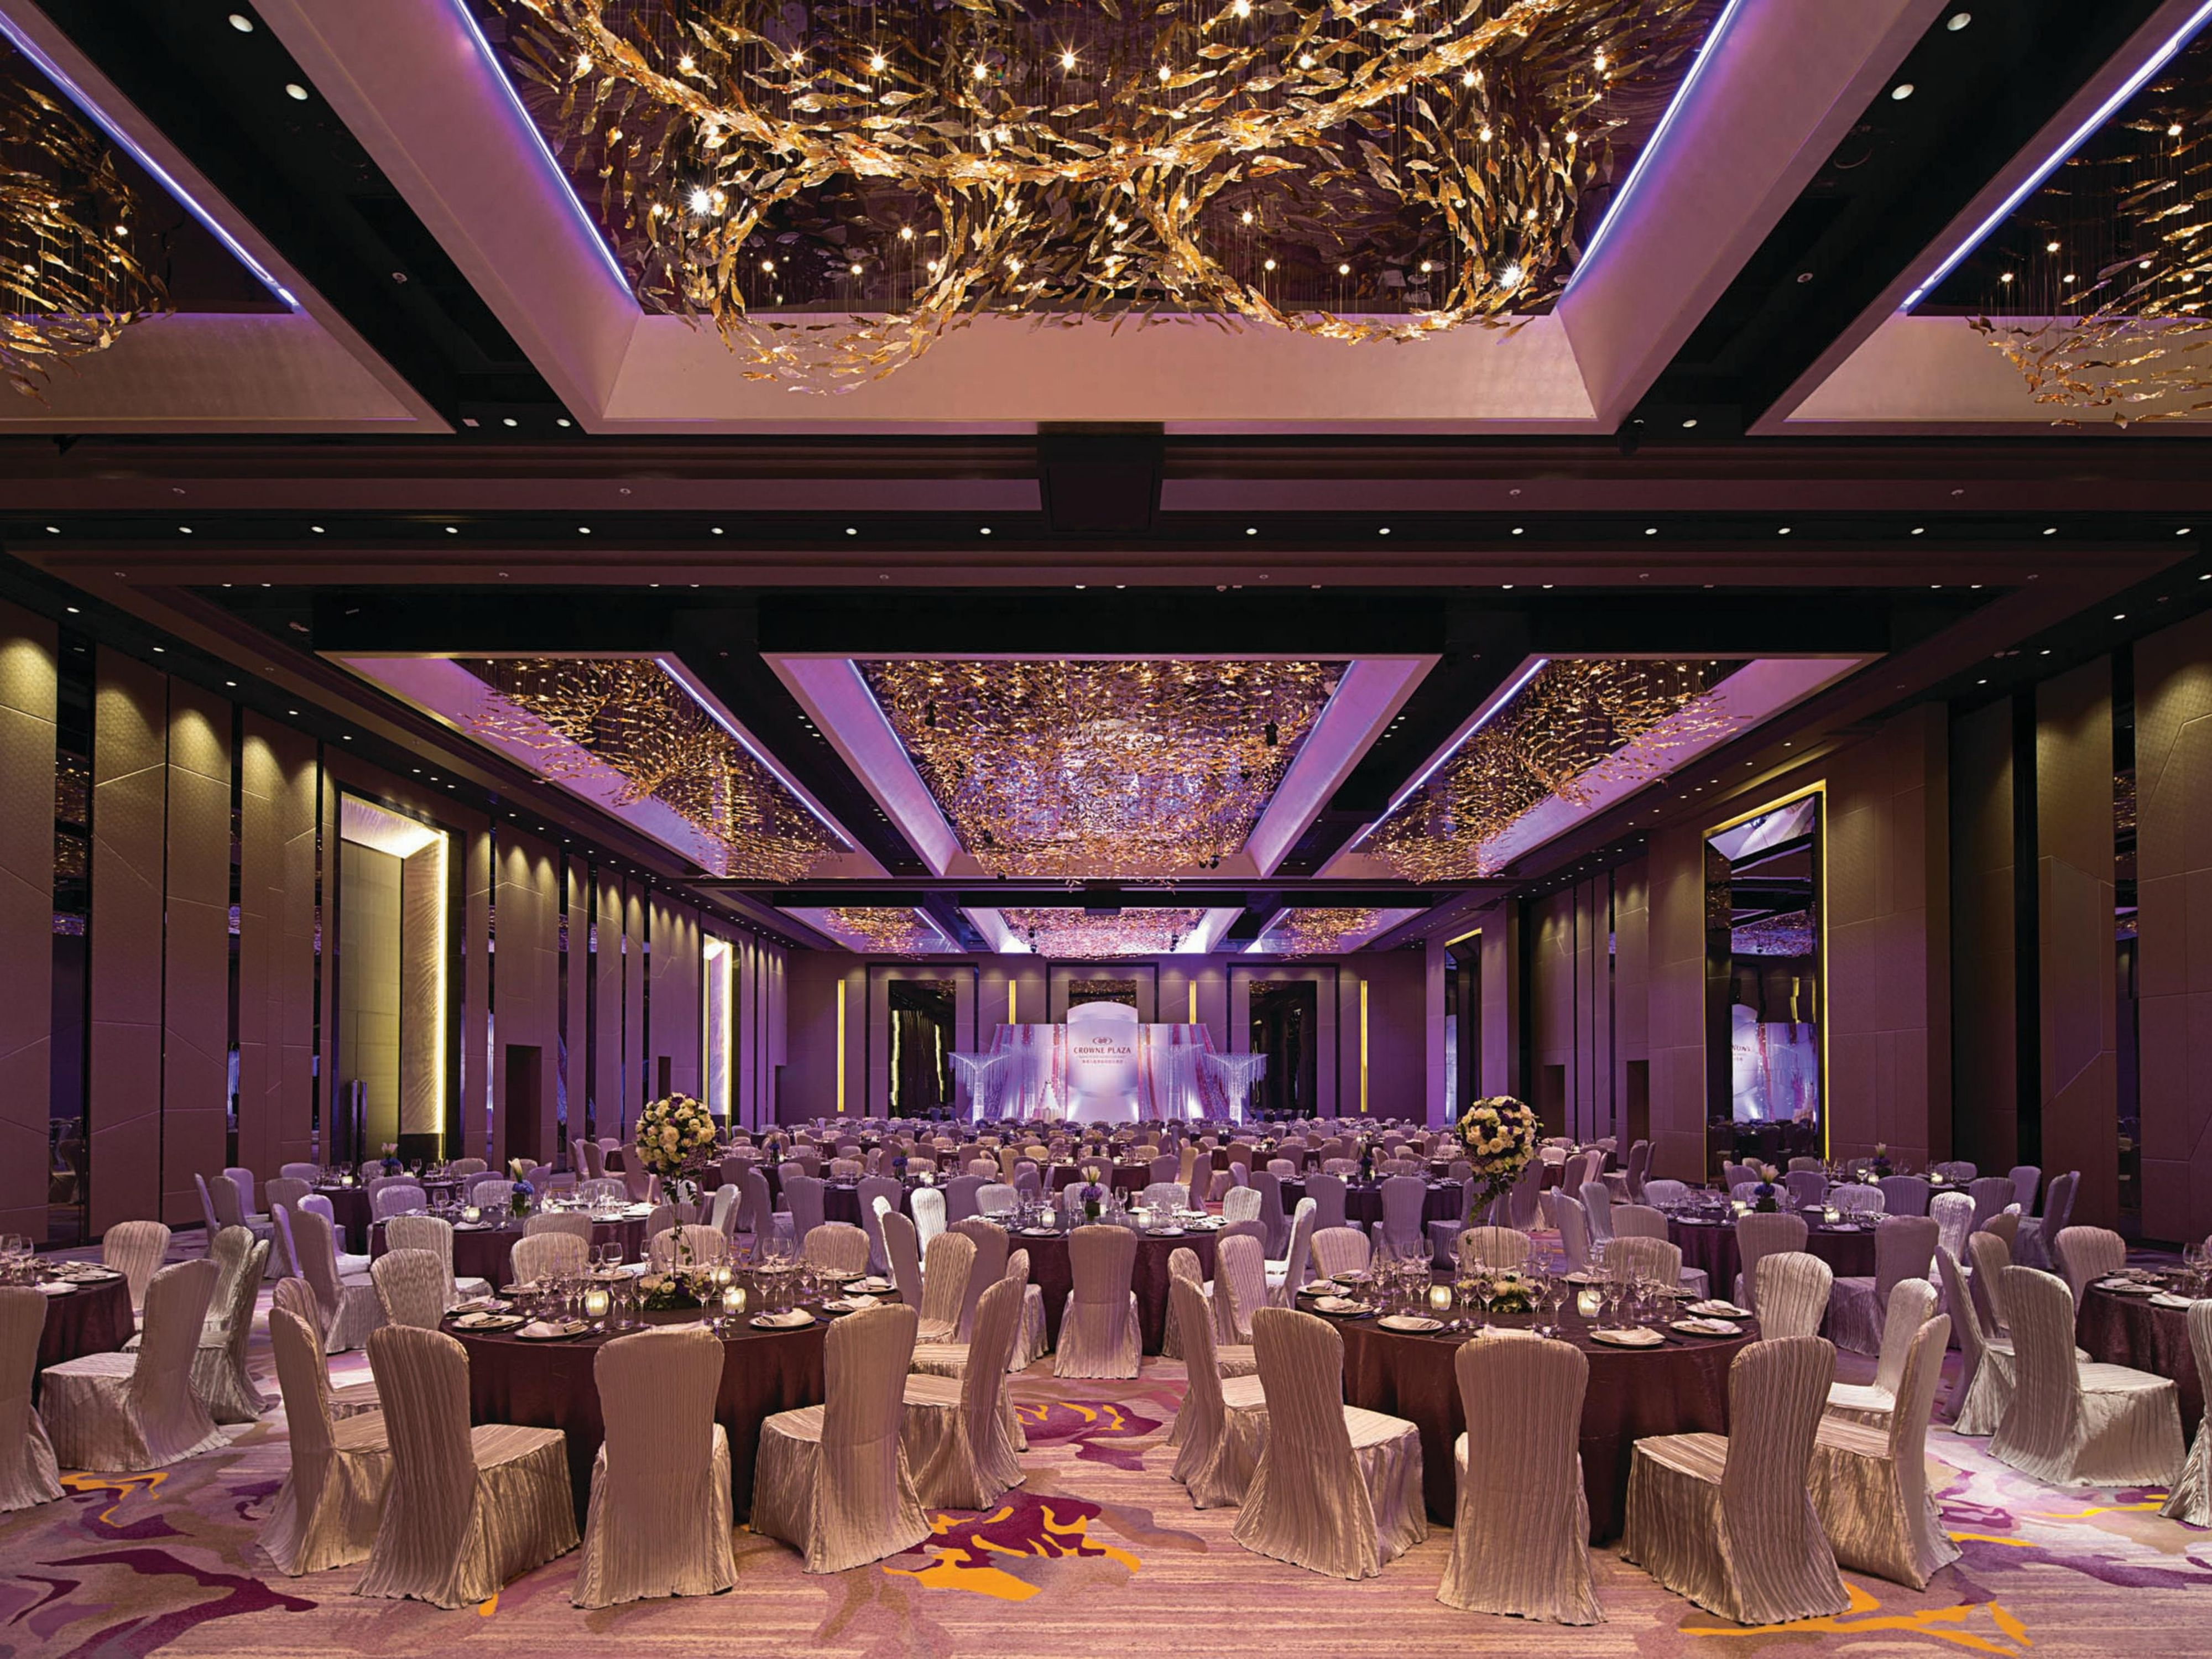 Business hotel in hong kong east hotel - Grand Ballroom